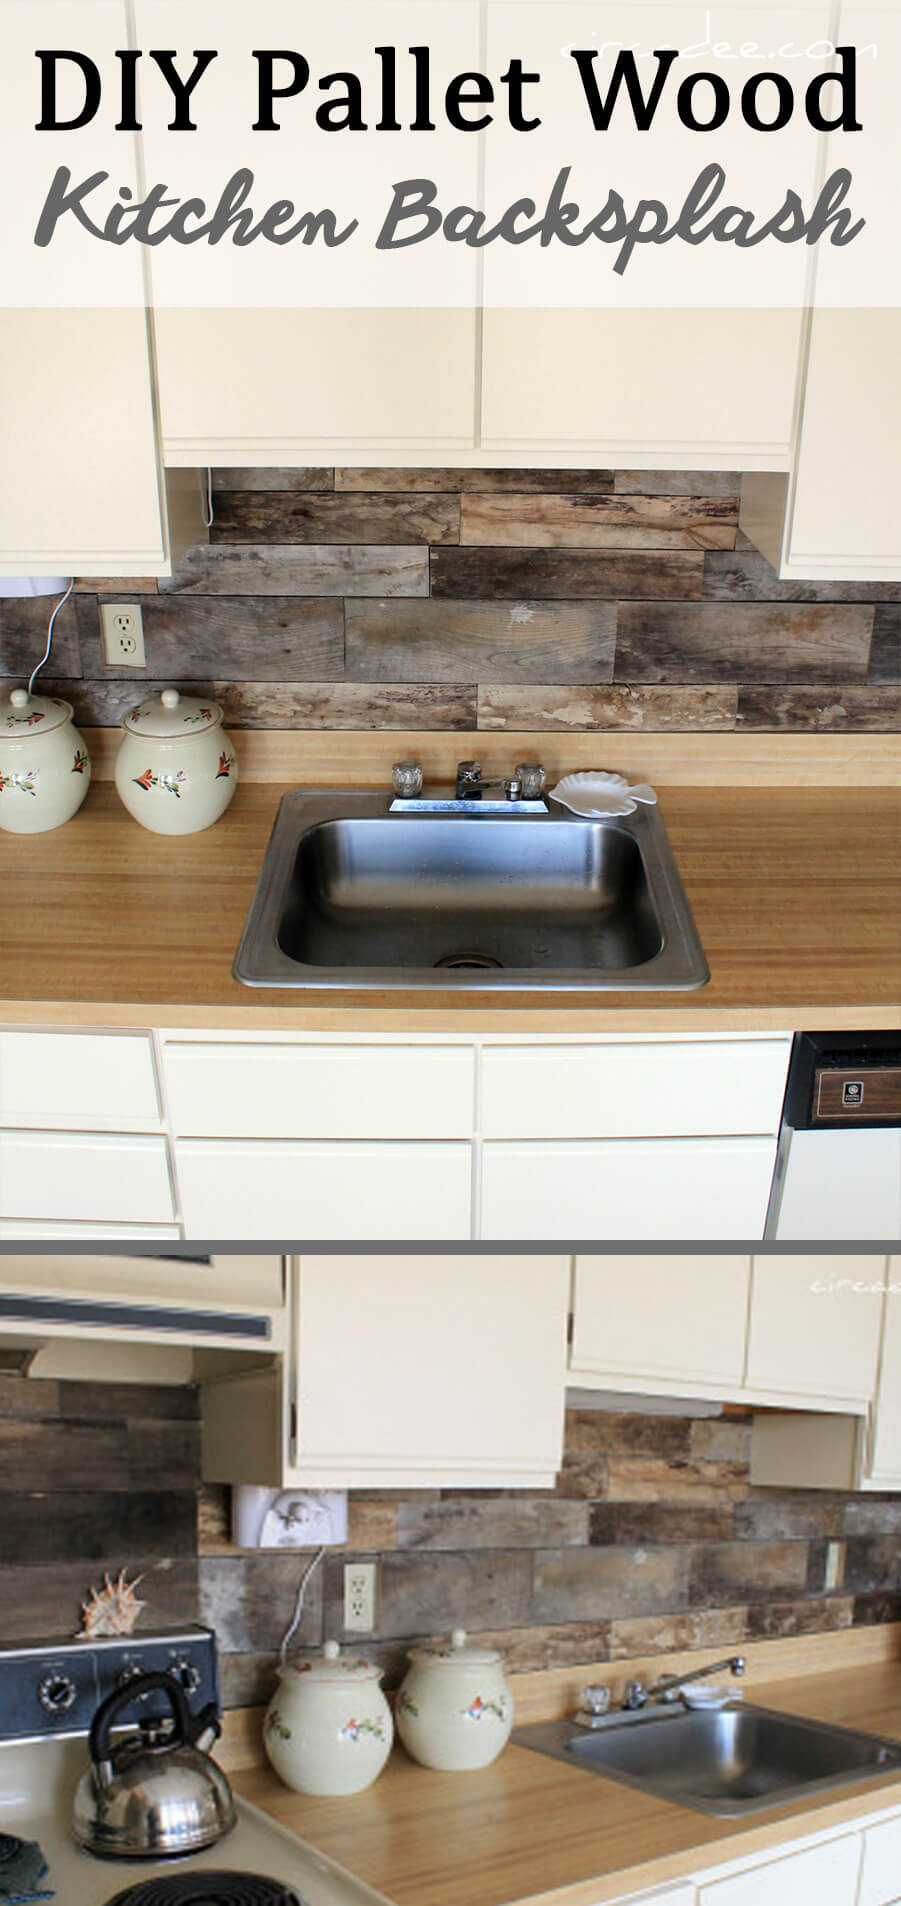 Choose Pallet Wood For A Unique Rustic Backsplash